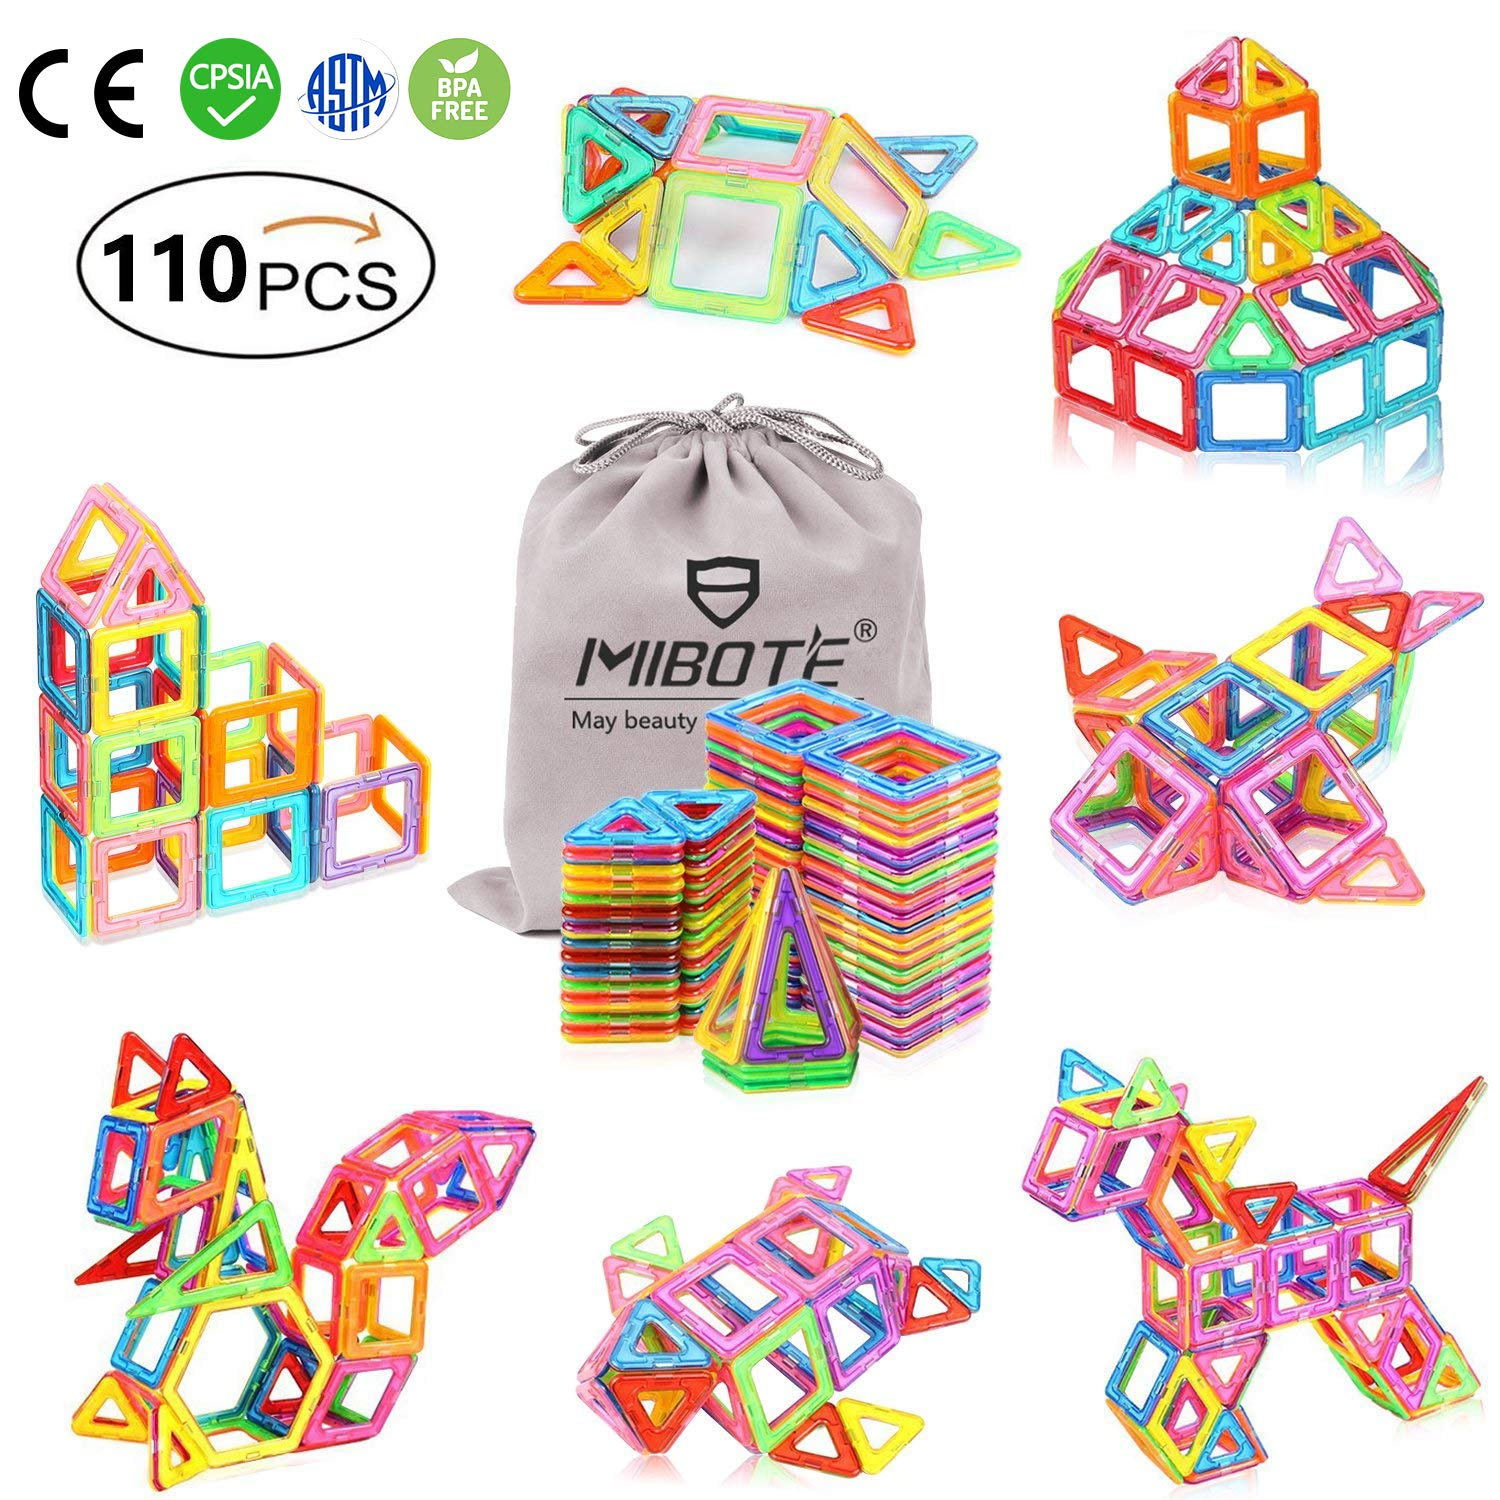 (110 PCS) Magnetic Building Blocks Educational Stacking Blocks Toddler Toys for Preschool Boys Grils Educational and Creative Imagination Development by Mibote product image